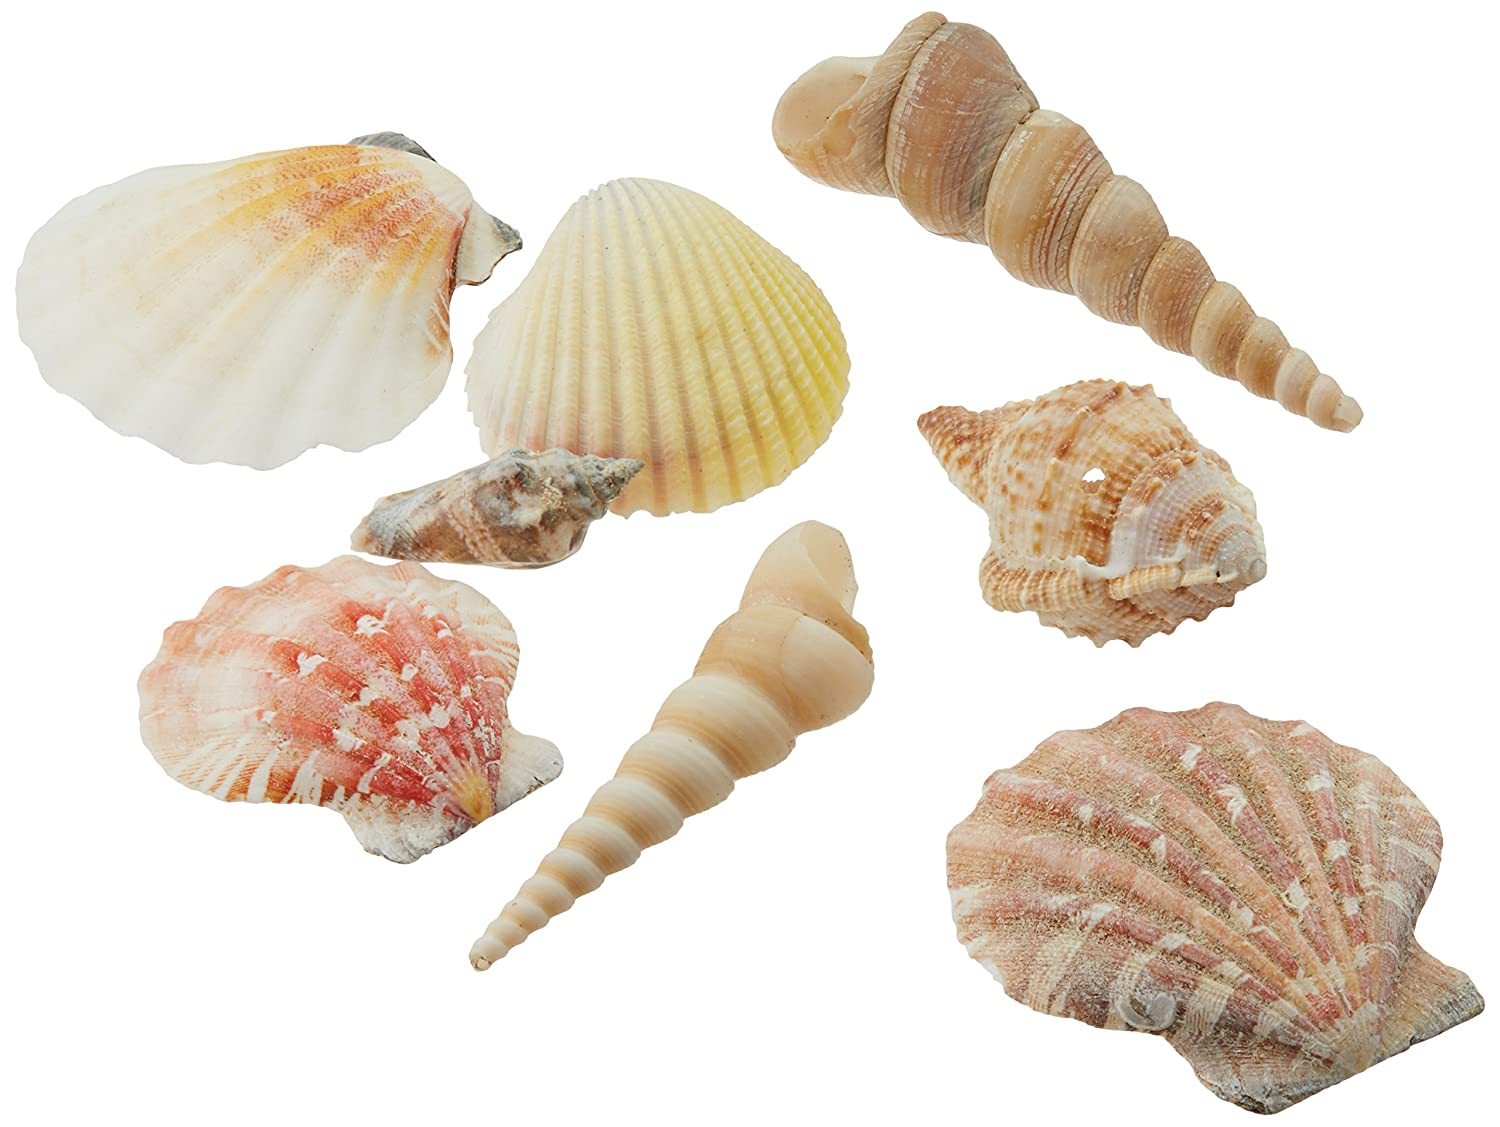 Creative Hobbies Sea Shells Mixed Beach Seashells - Various Sizes up to 2 Shells -Bag of Approx. 50 Seashells JEA-C213